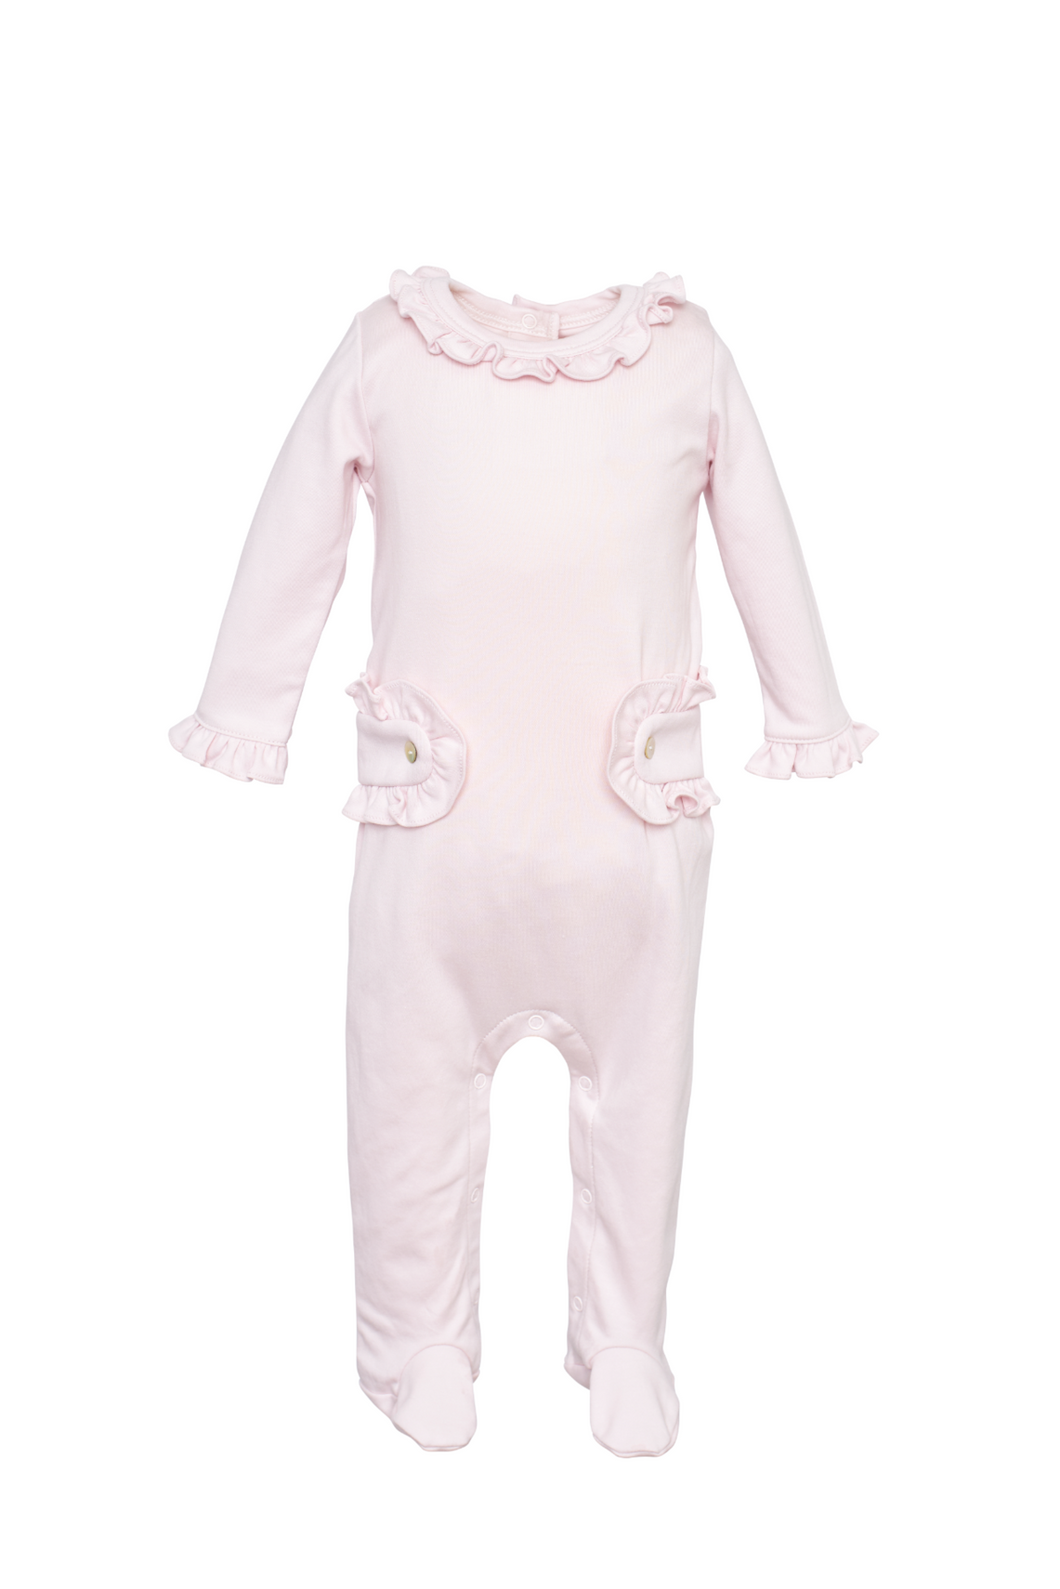 Lucy Footed Romper - Light Pink